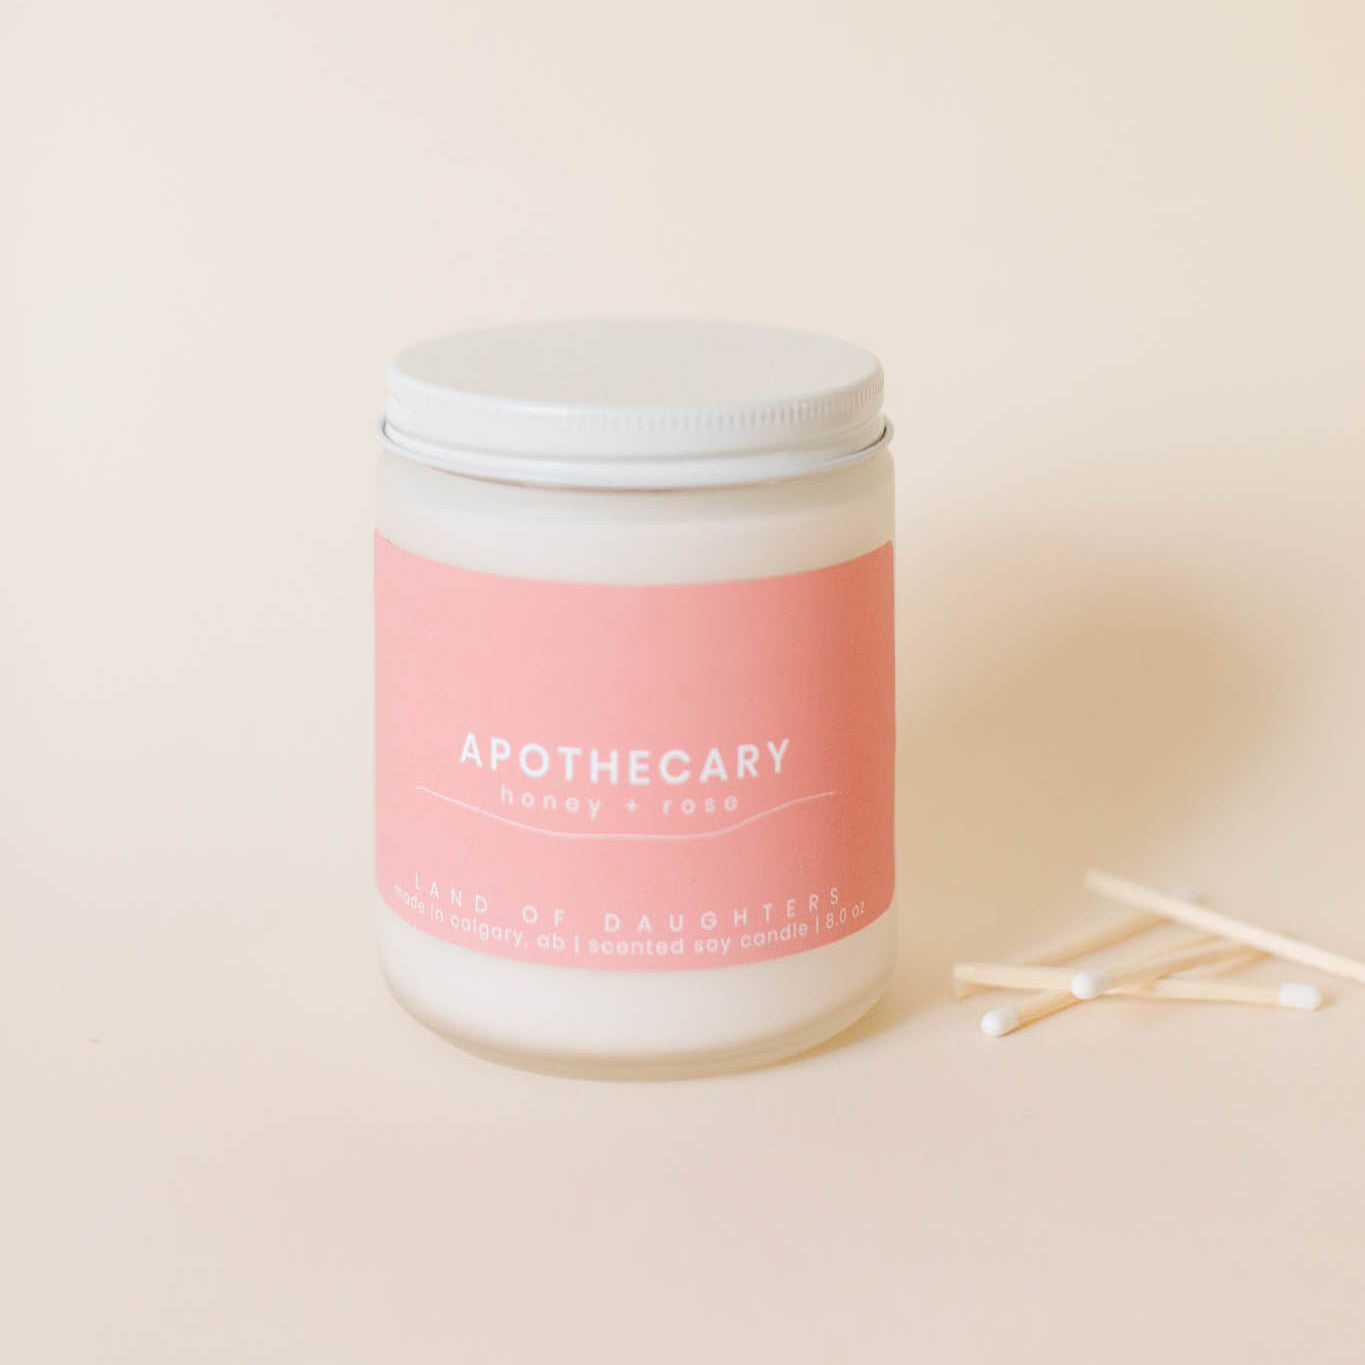 apothecary (honey + rose) - all natural organic scented candle